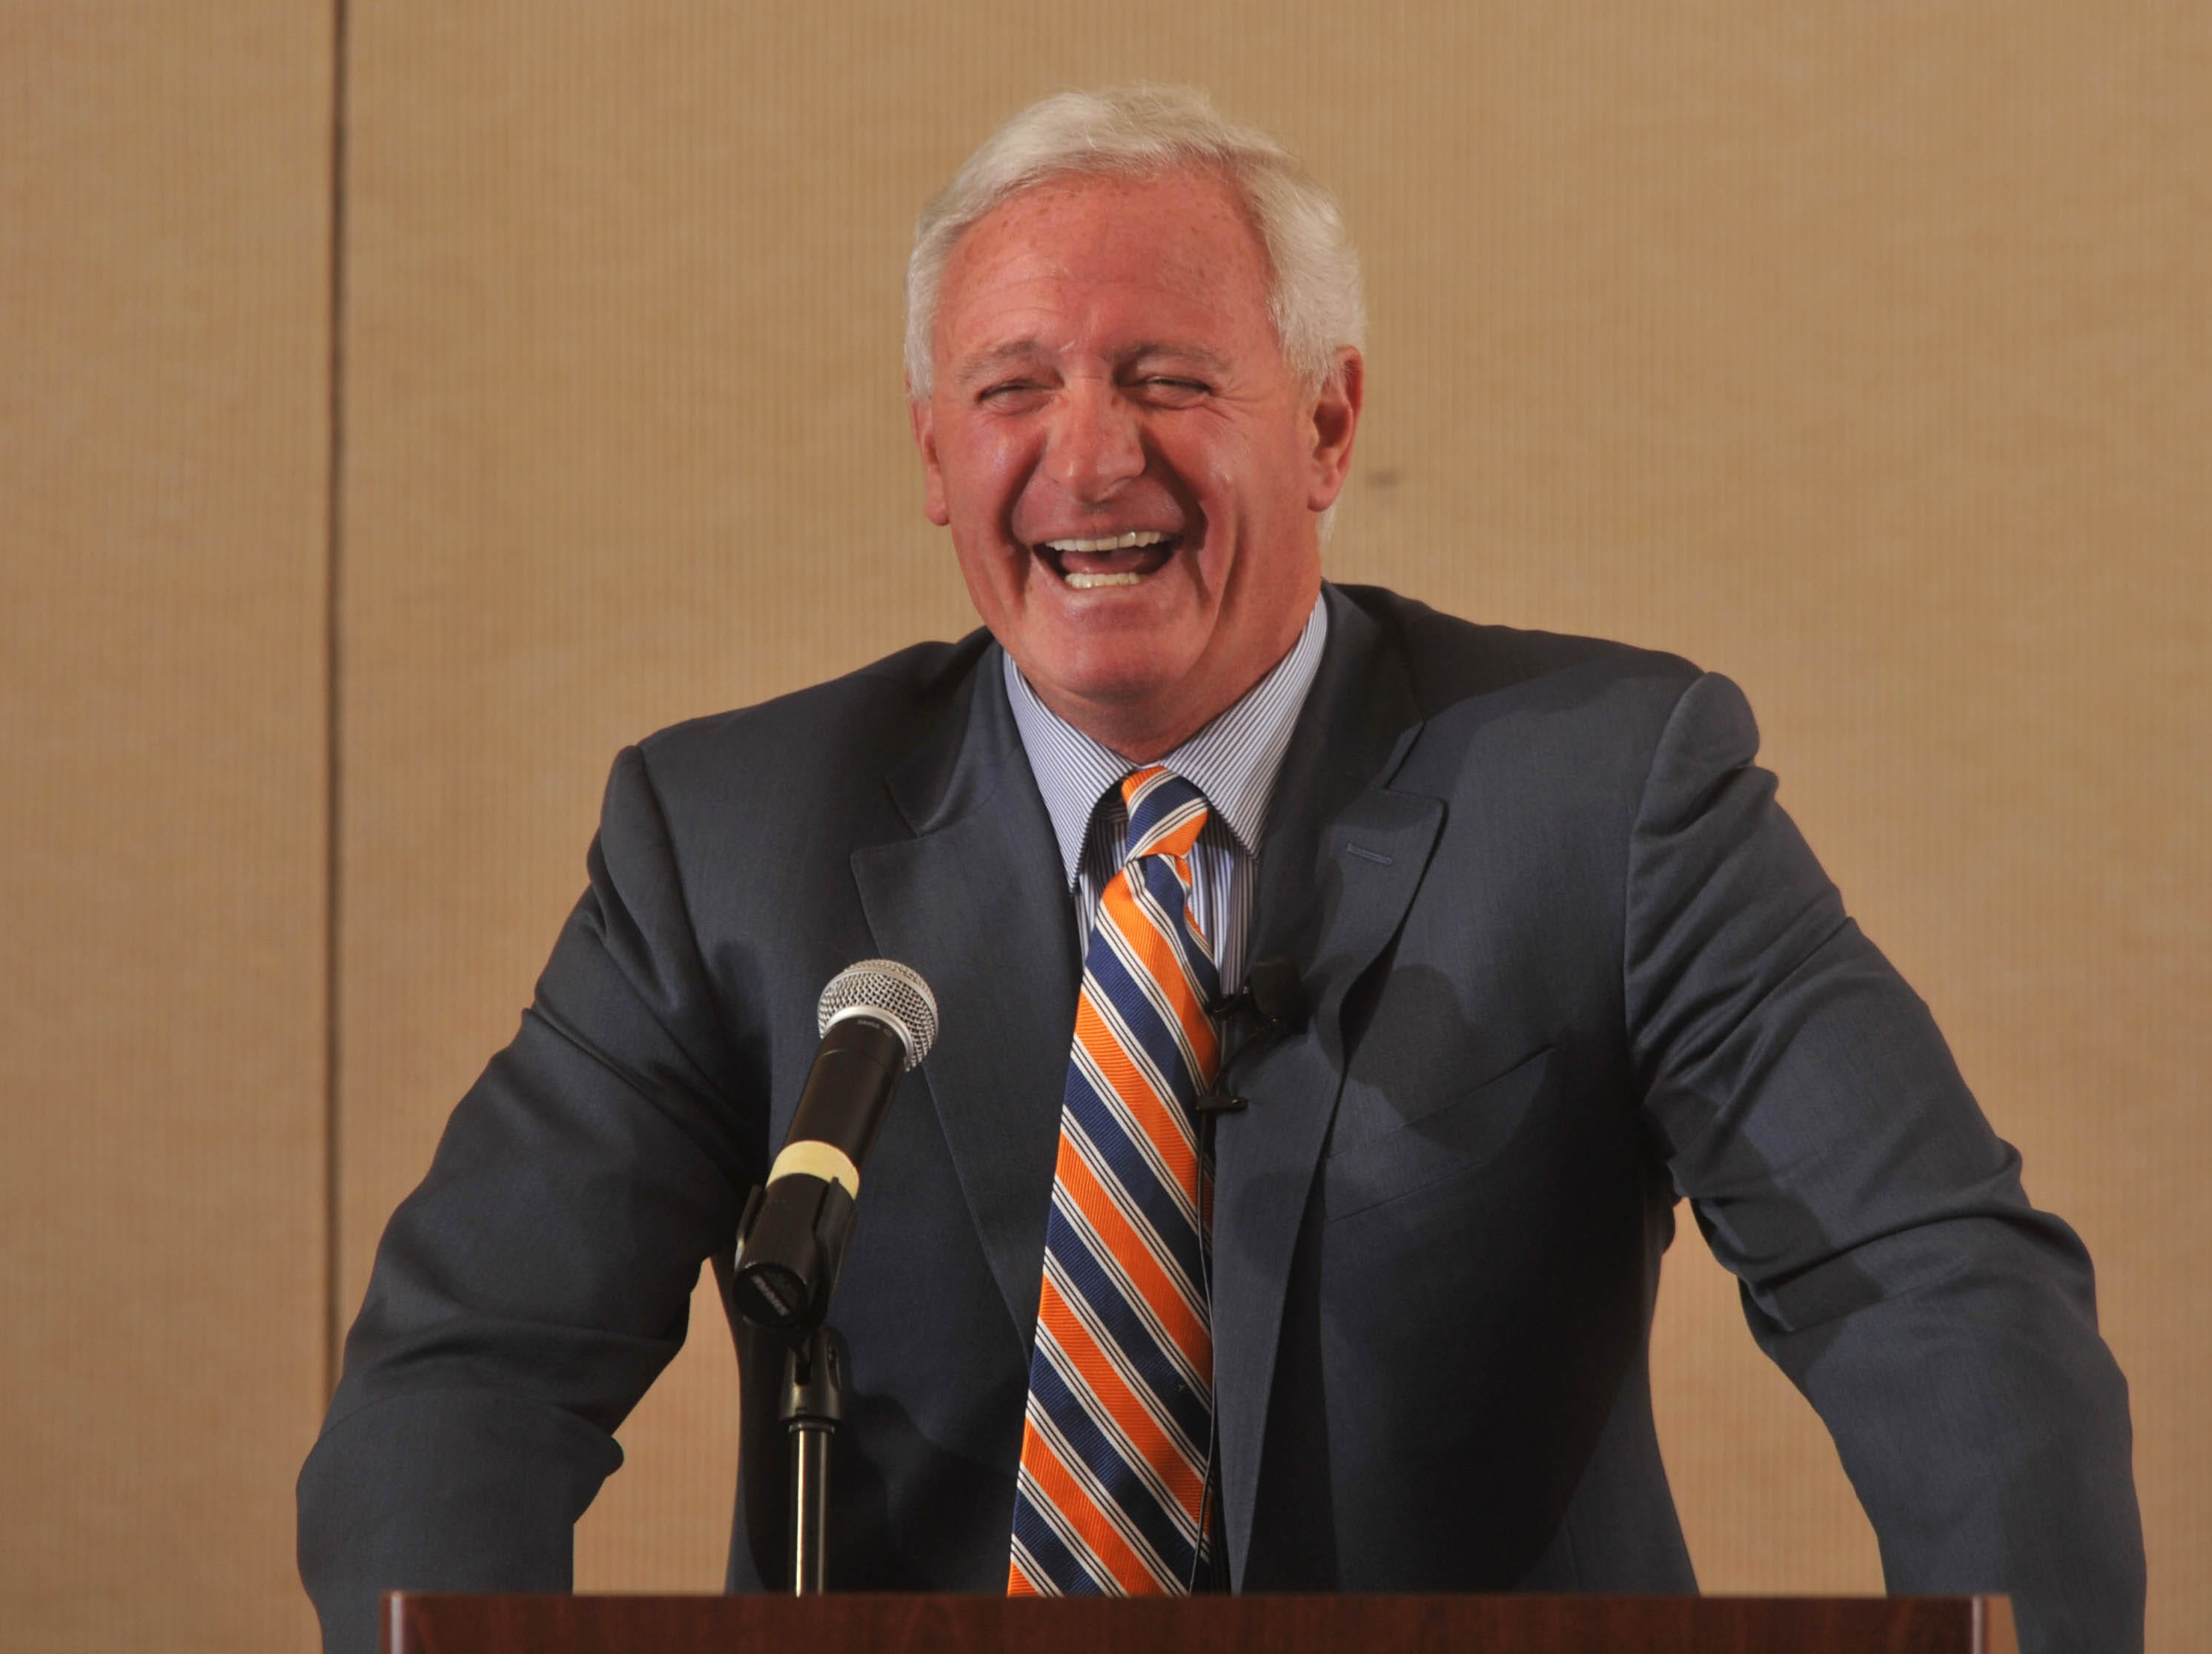 Jimmy Haslam gives a talk about the company he runs, Pilot Flying J, and the NFL team he owns, the Cleveland Browns, during a Knoxville Chamber execUTive Speaker Series presentation Wednesday, April 10, 2013, at the Marriott.